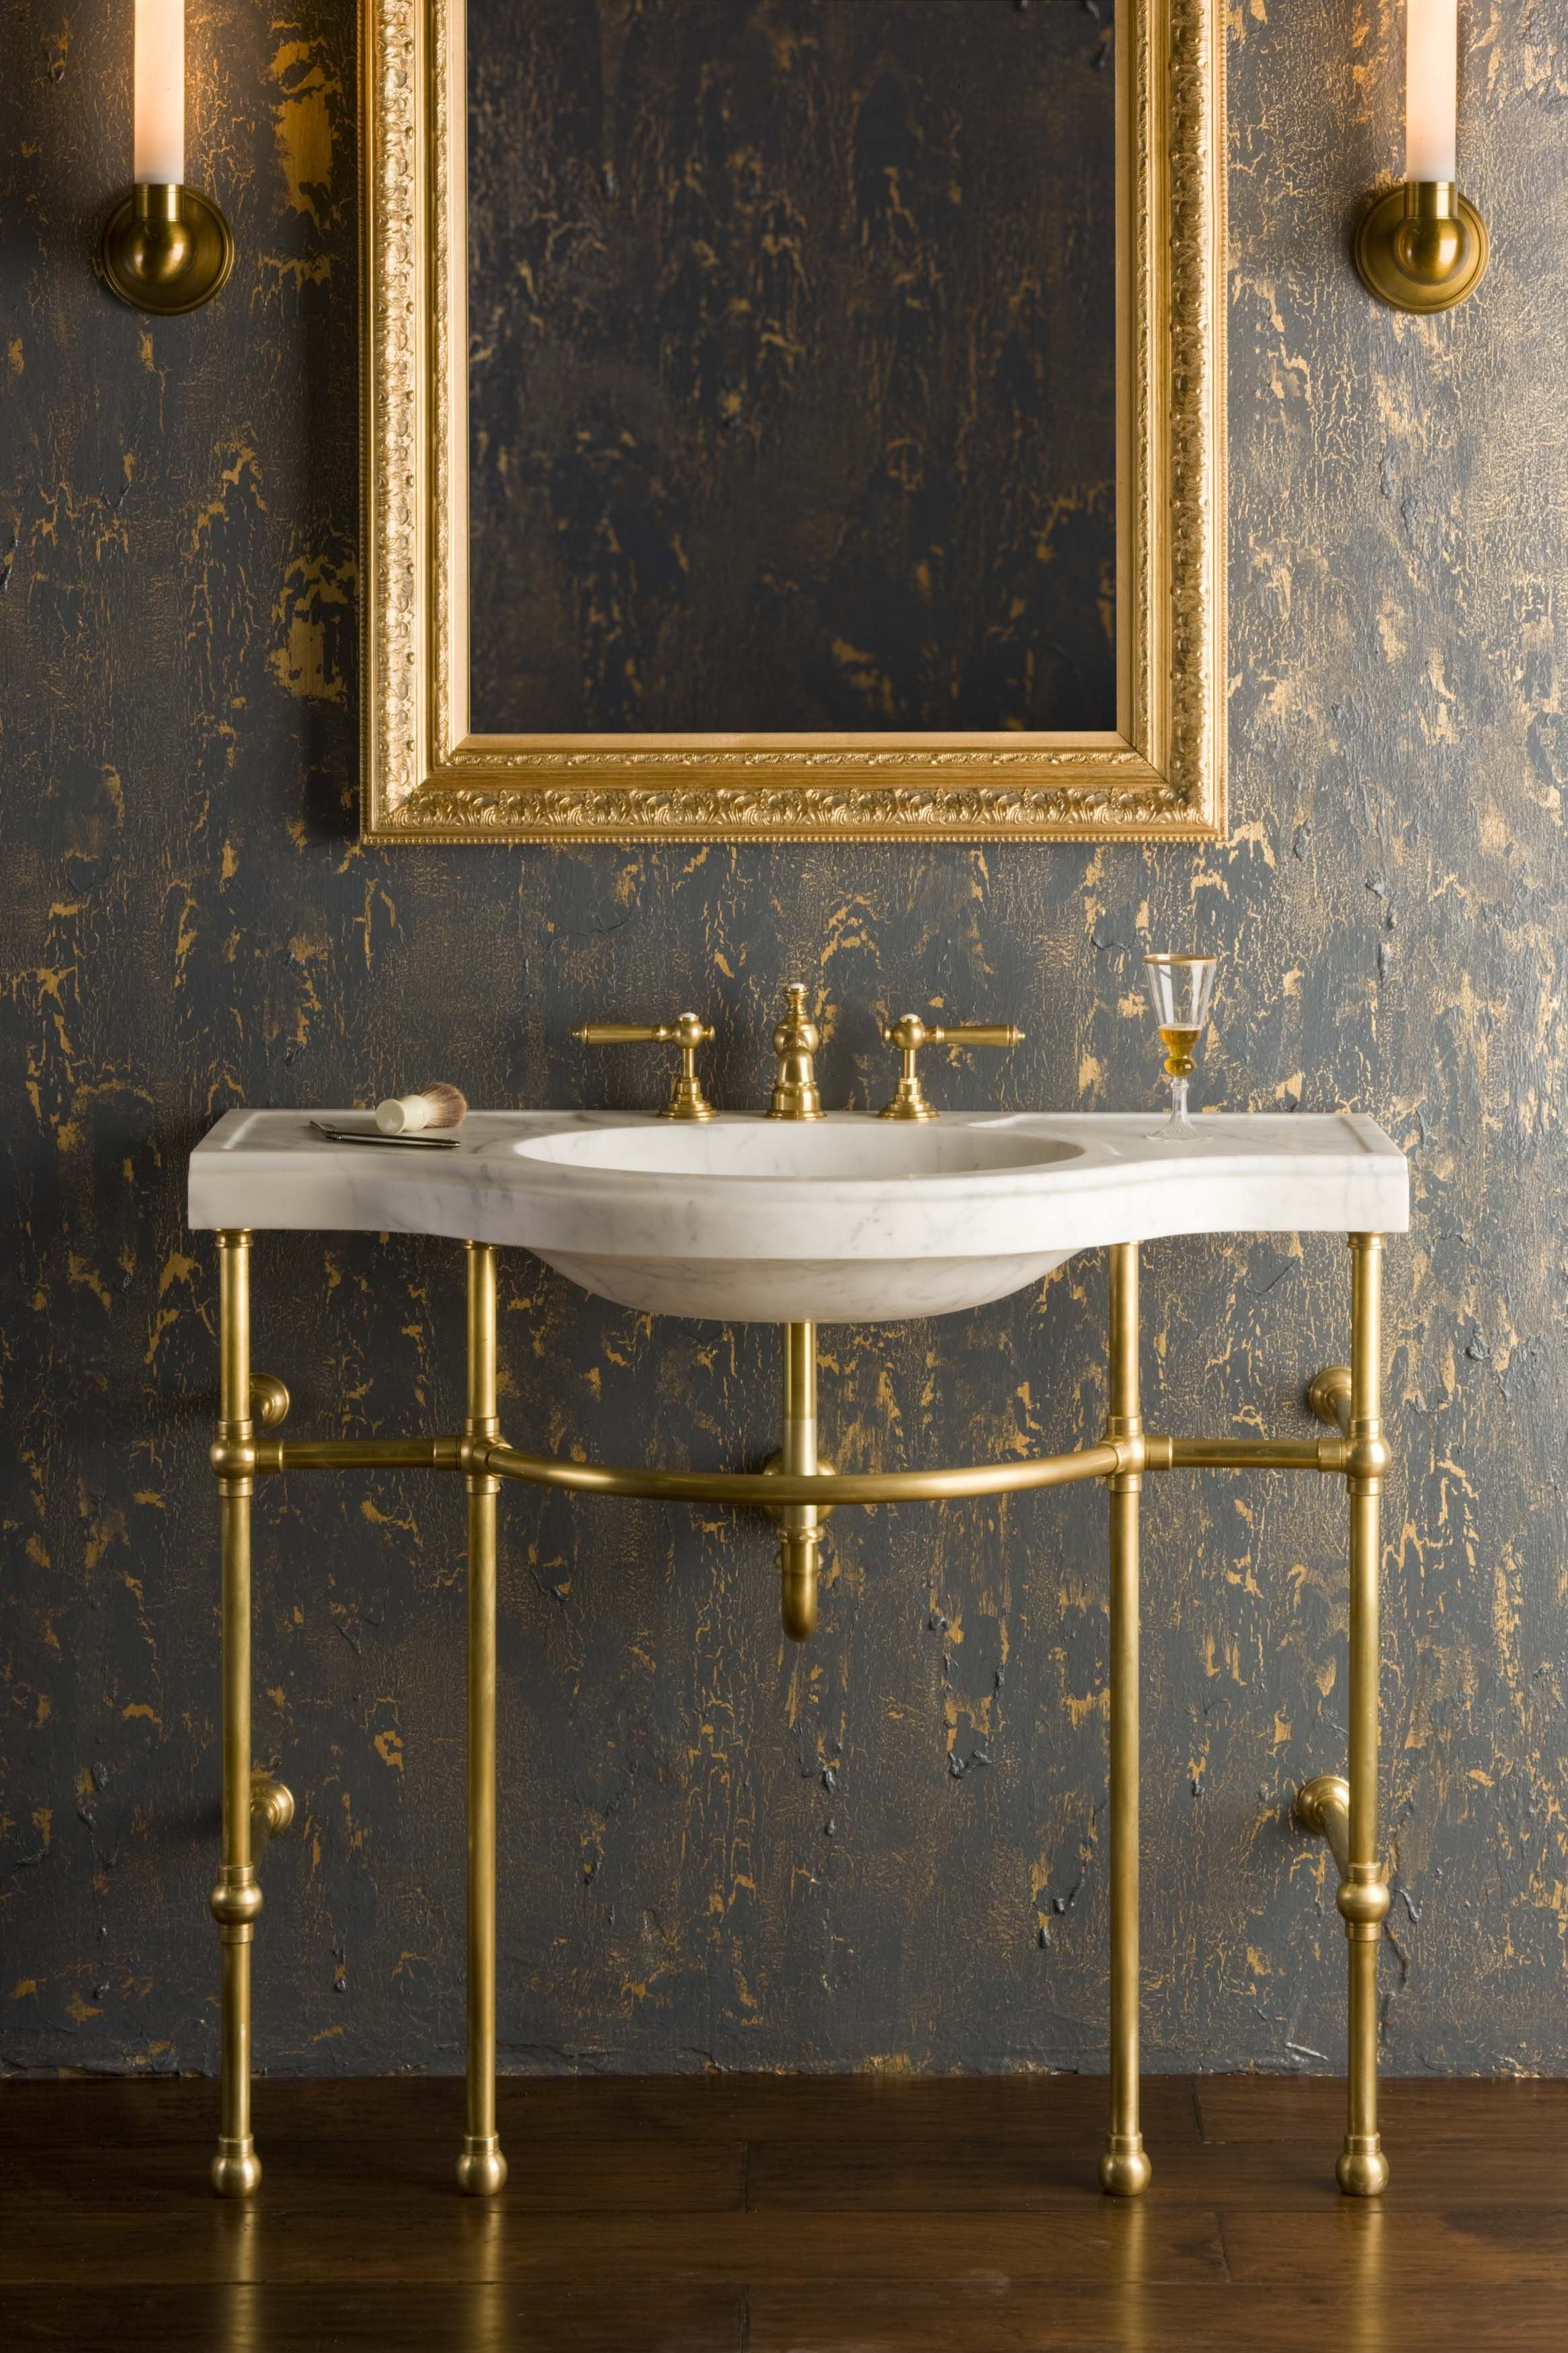 4 Leg Curved Console Shown In Brass With Carrara Marble Sink. Available At  Renaissance In Old Town.